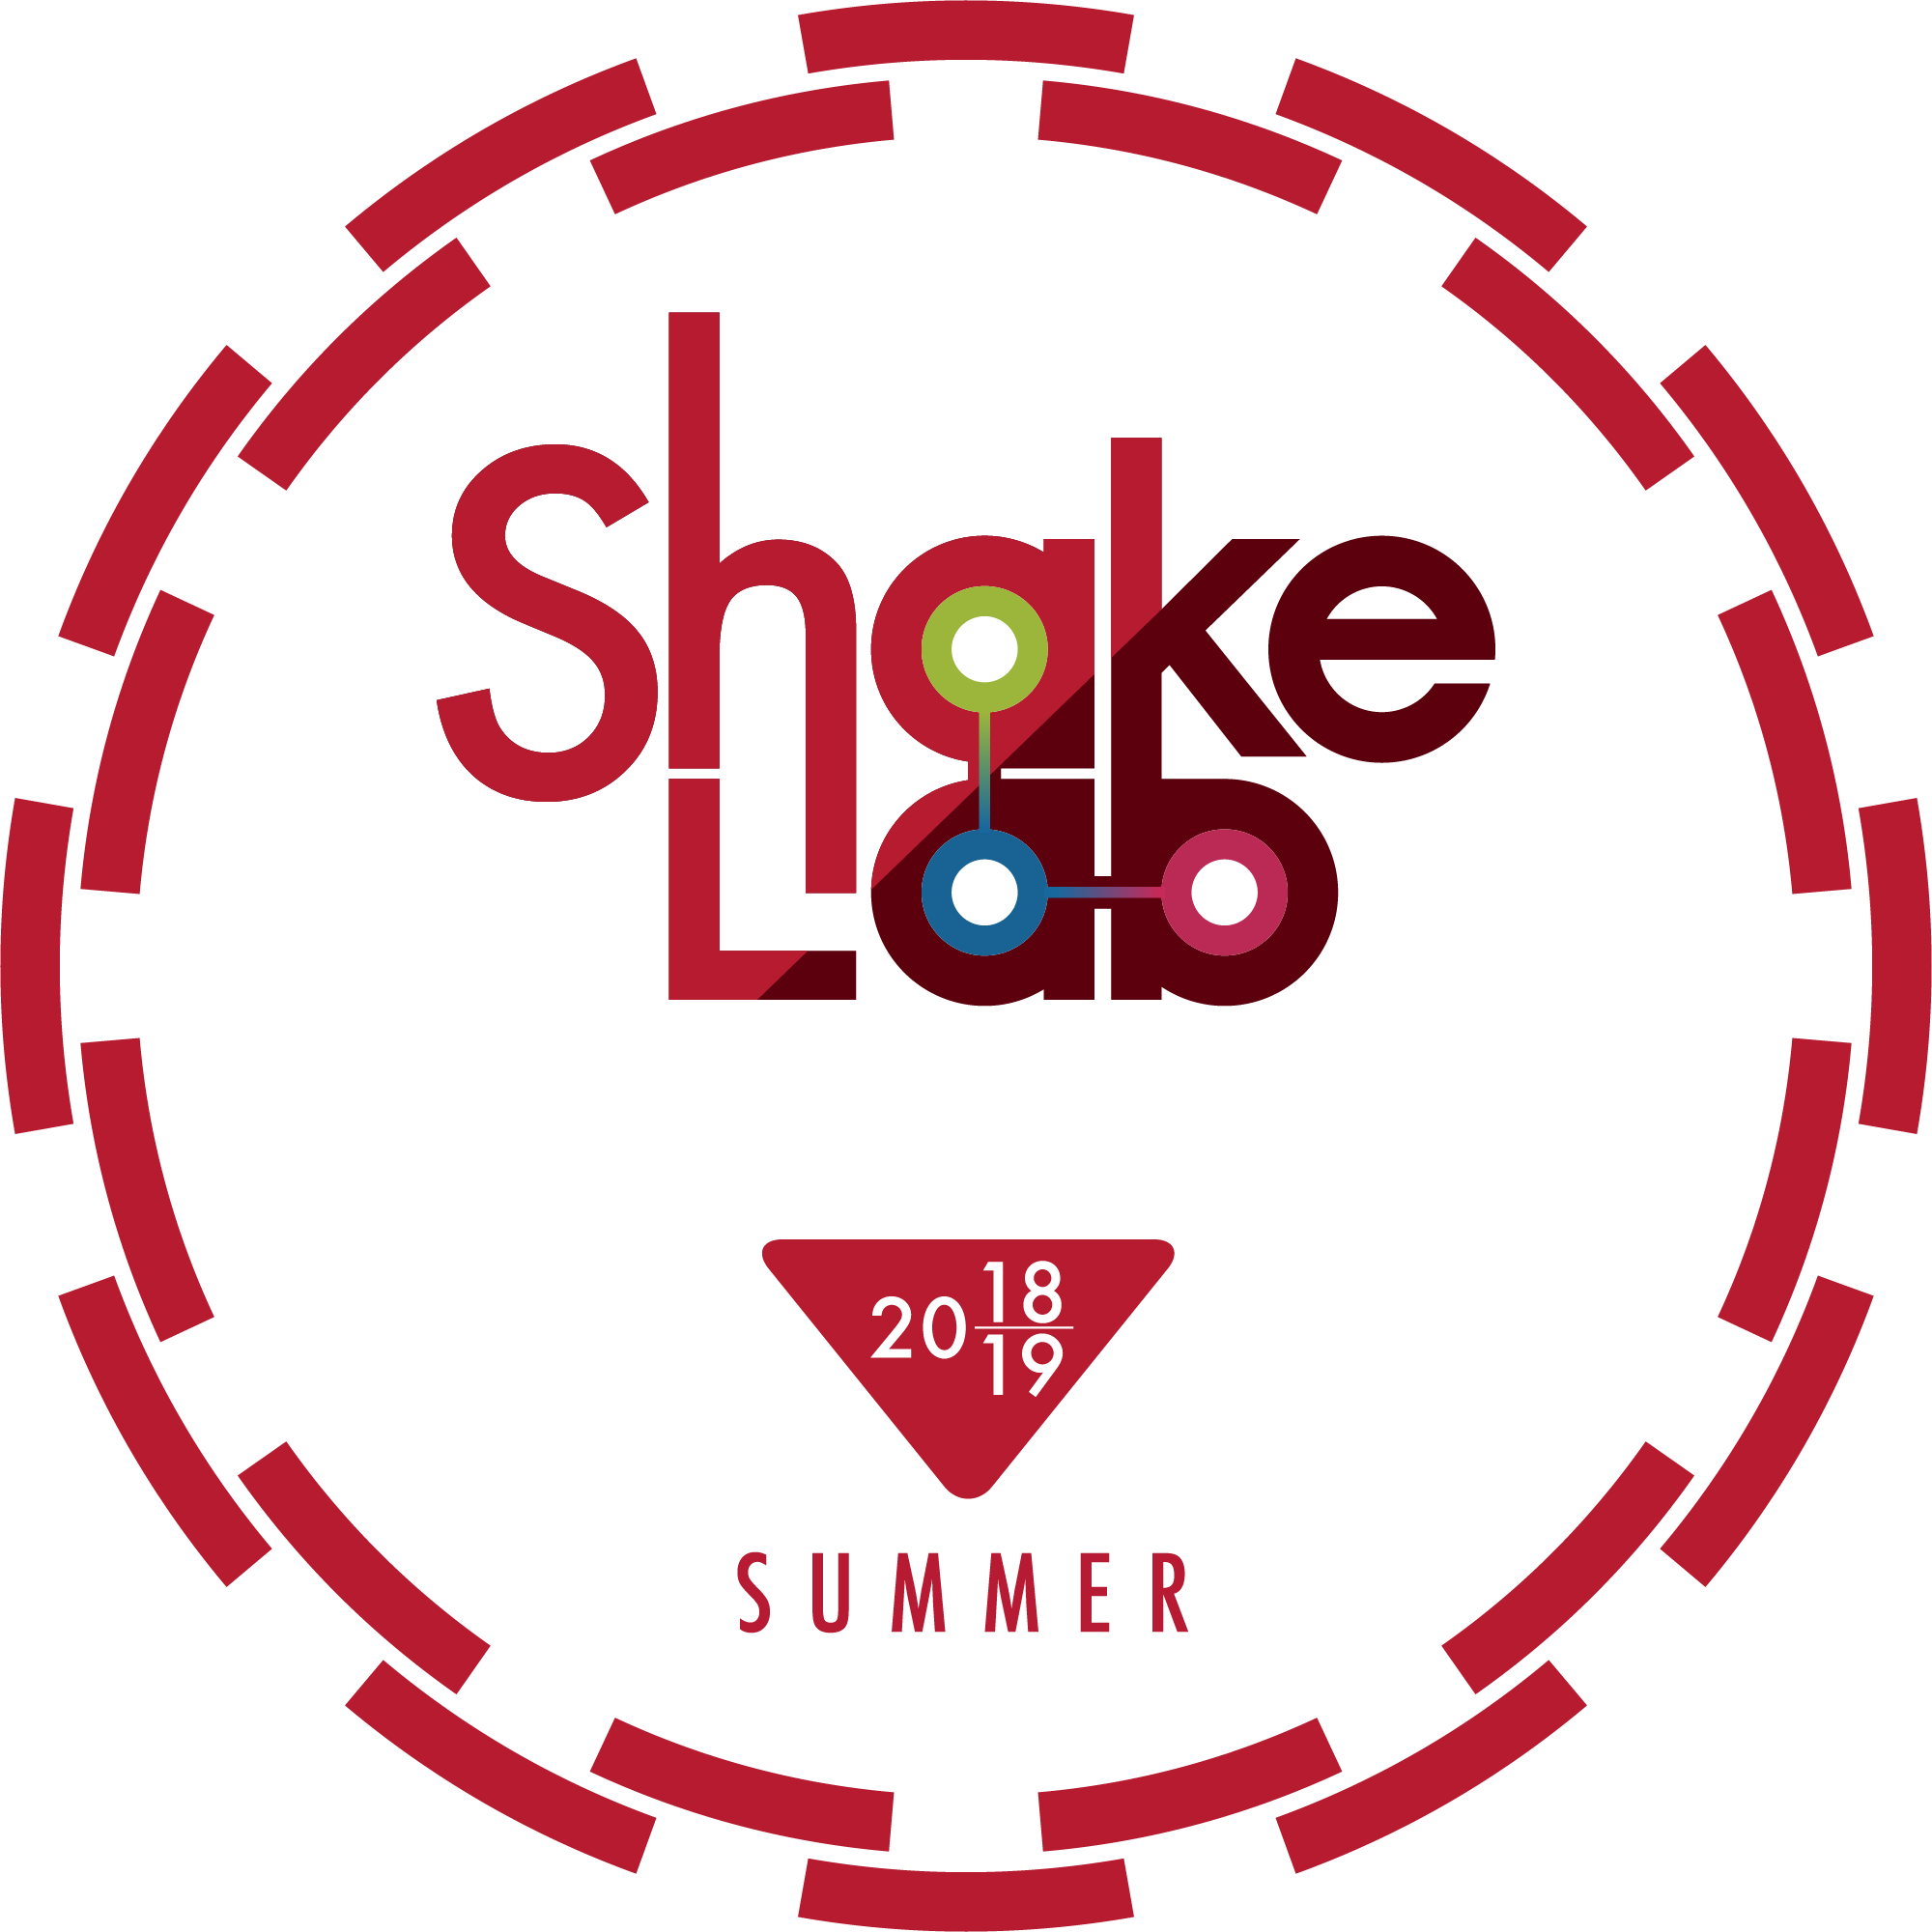 SHAKE LAB 2018 summer logo